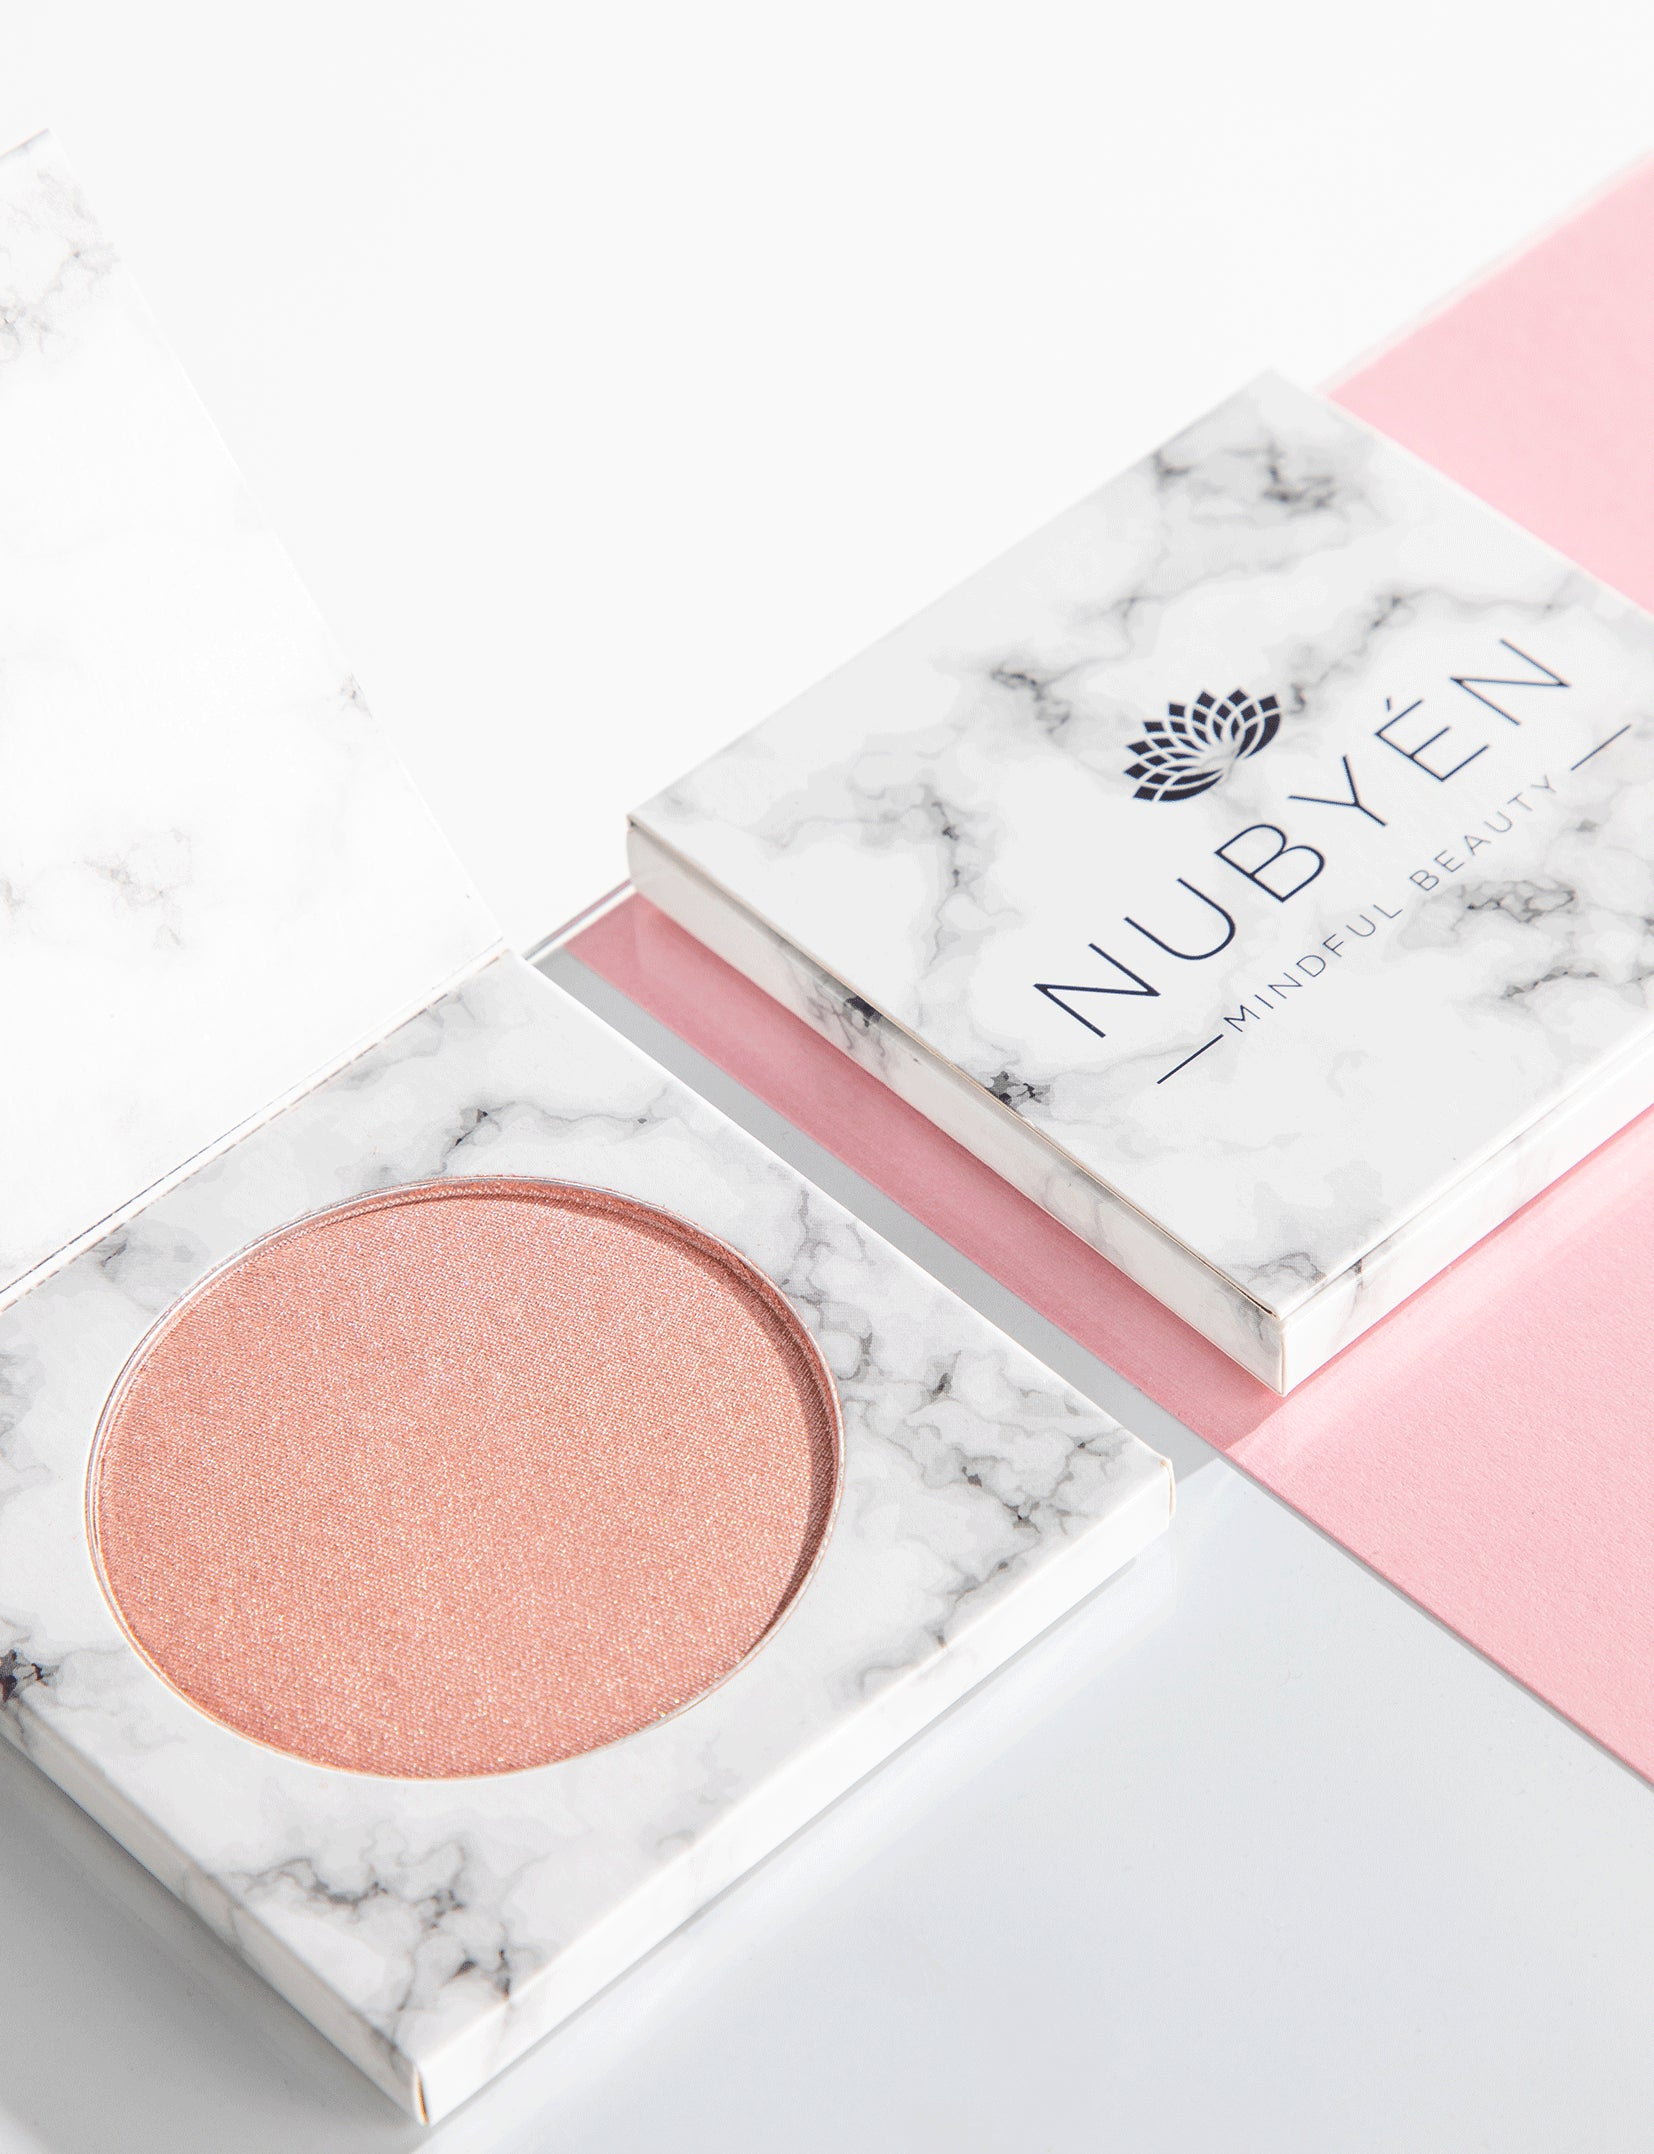 this is nubyen makeup highlighter, very hydrating and vegan and cruelty free. its a powder formulation and is long lasting. Nubyen highlighter, best highlighting powder, highlighter makeup, charlotte tilbury hollywood highlighter, too faced hoighlighter, glossier haloscope, sephora golden hour luminizing powder, becca shimmering perfector, fenty beauty killawatt freestyle highlighter